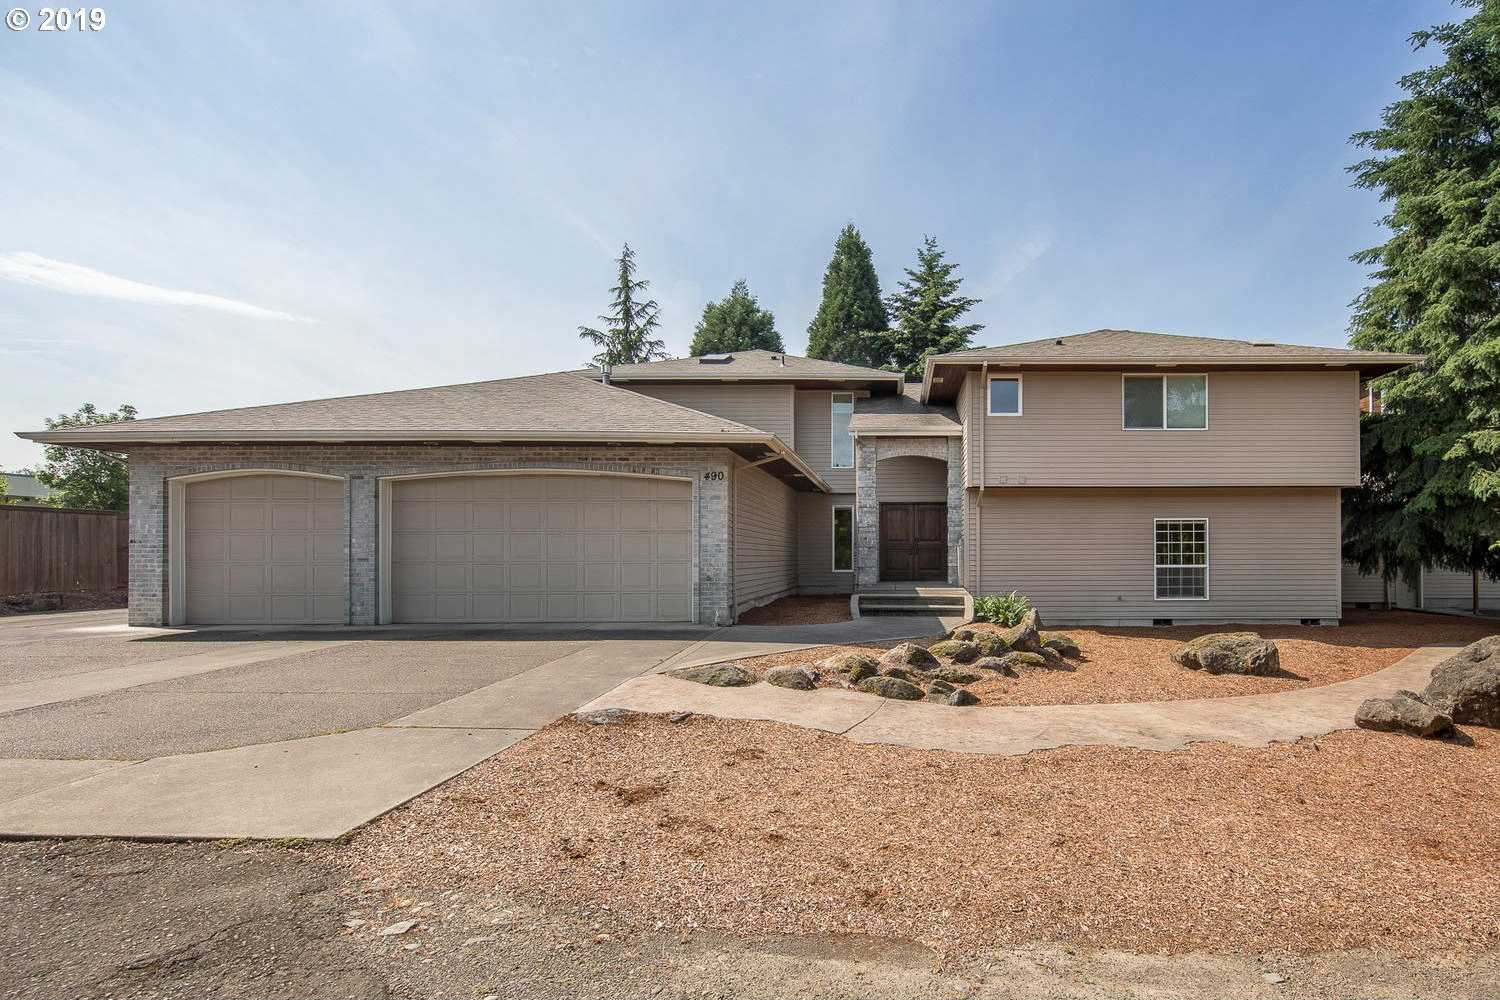 $1,225,000 - 4Br/3Ba -  for Sale in Ellmonica, Beaverton